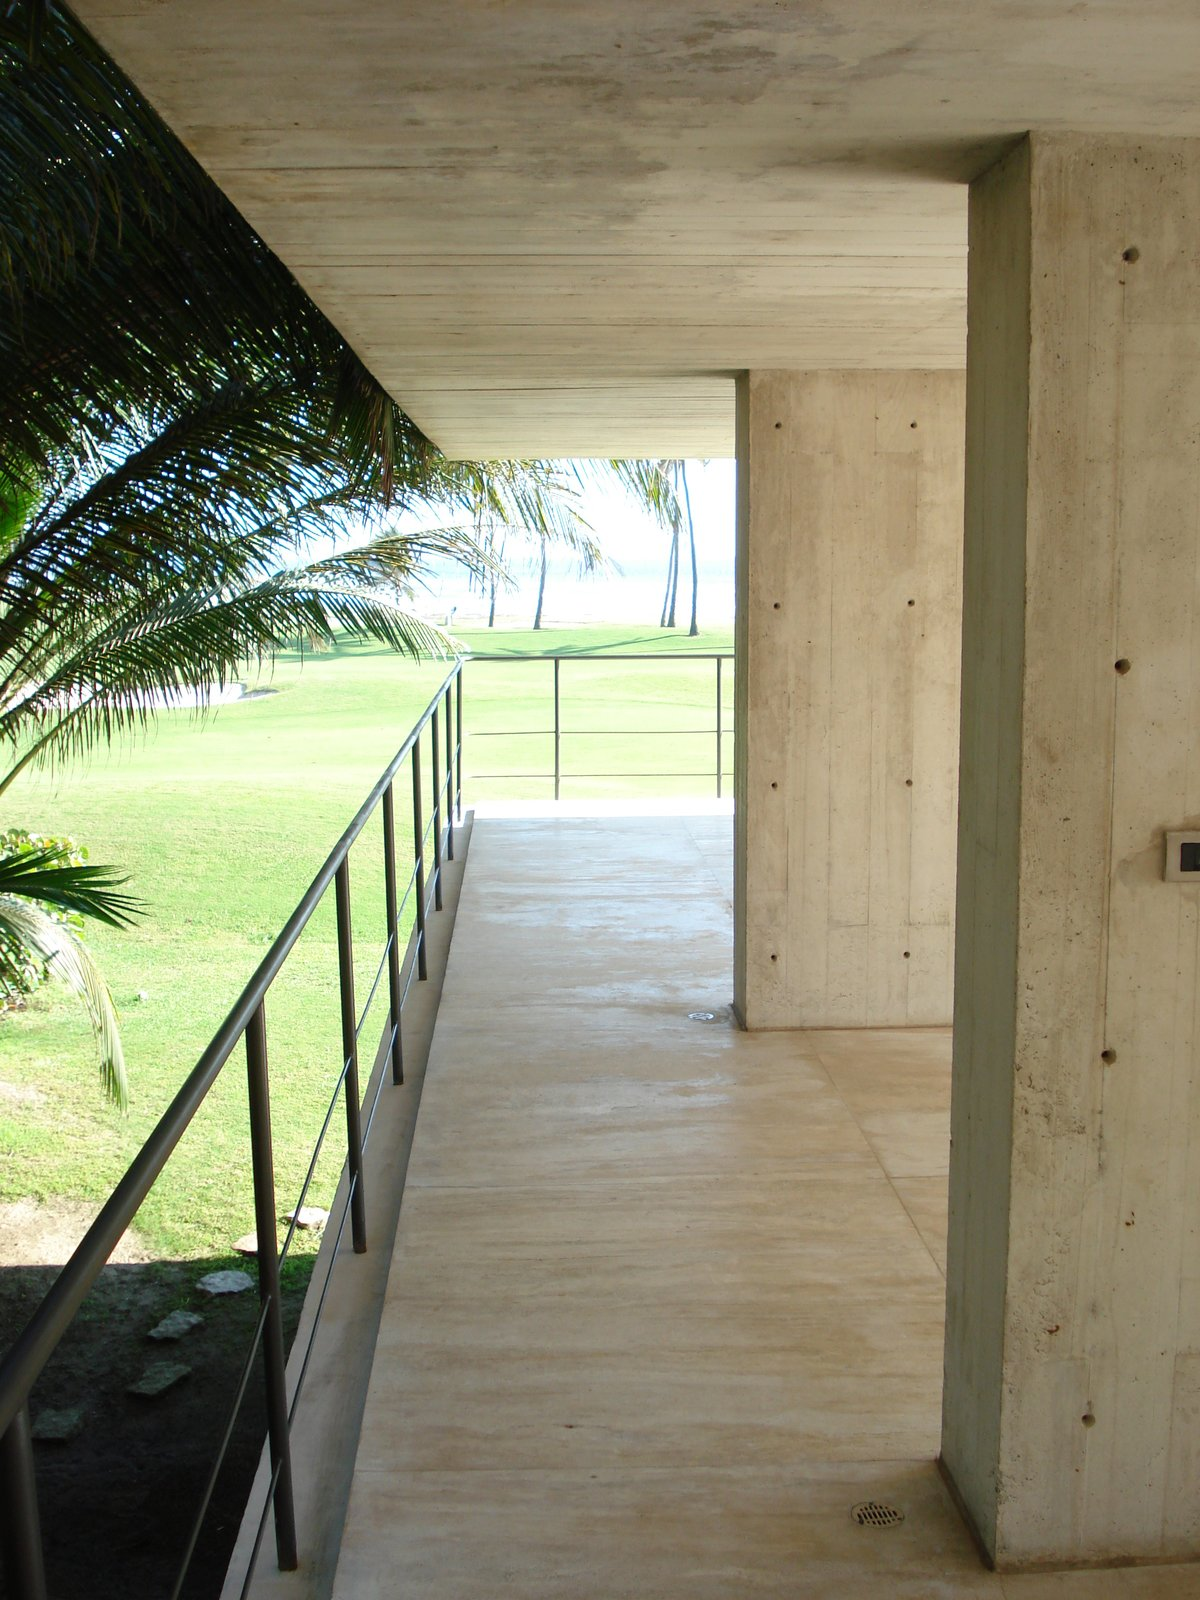 Terrace Level 2 Tagged: Outdoor, Field, and Stone Patio, Porch, Deck. La Caracola Beach House by PAUL CREMOUX studio